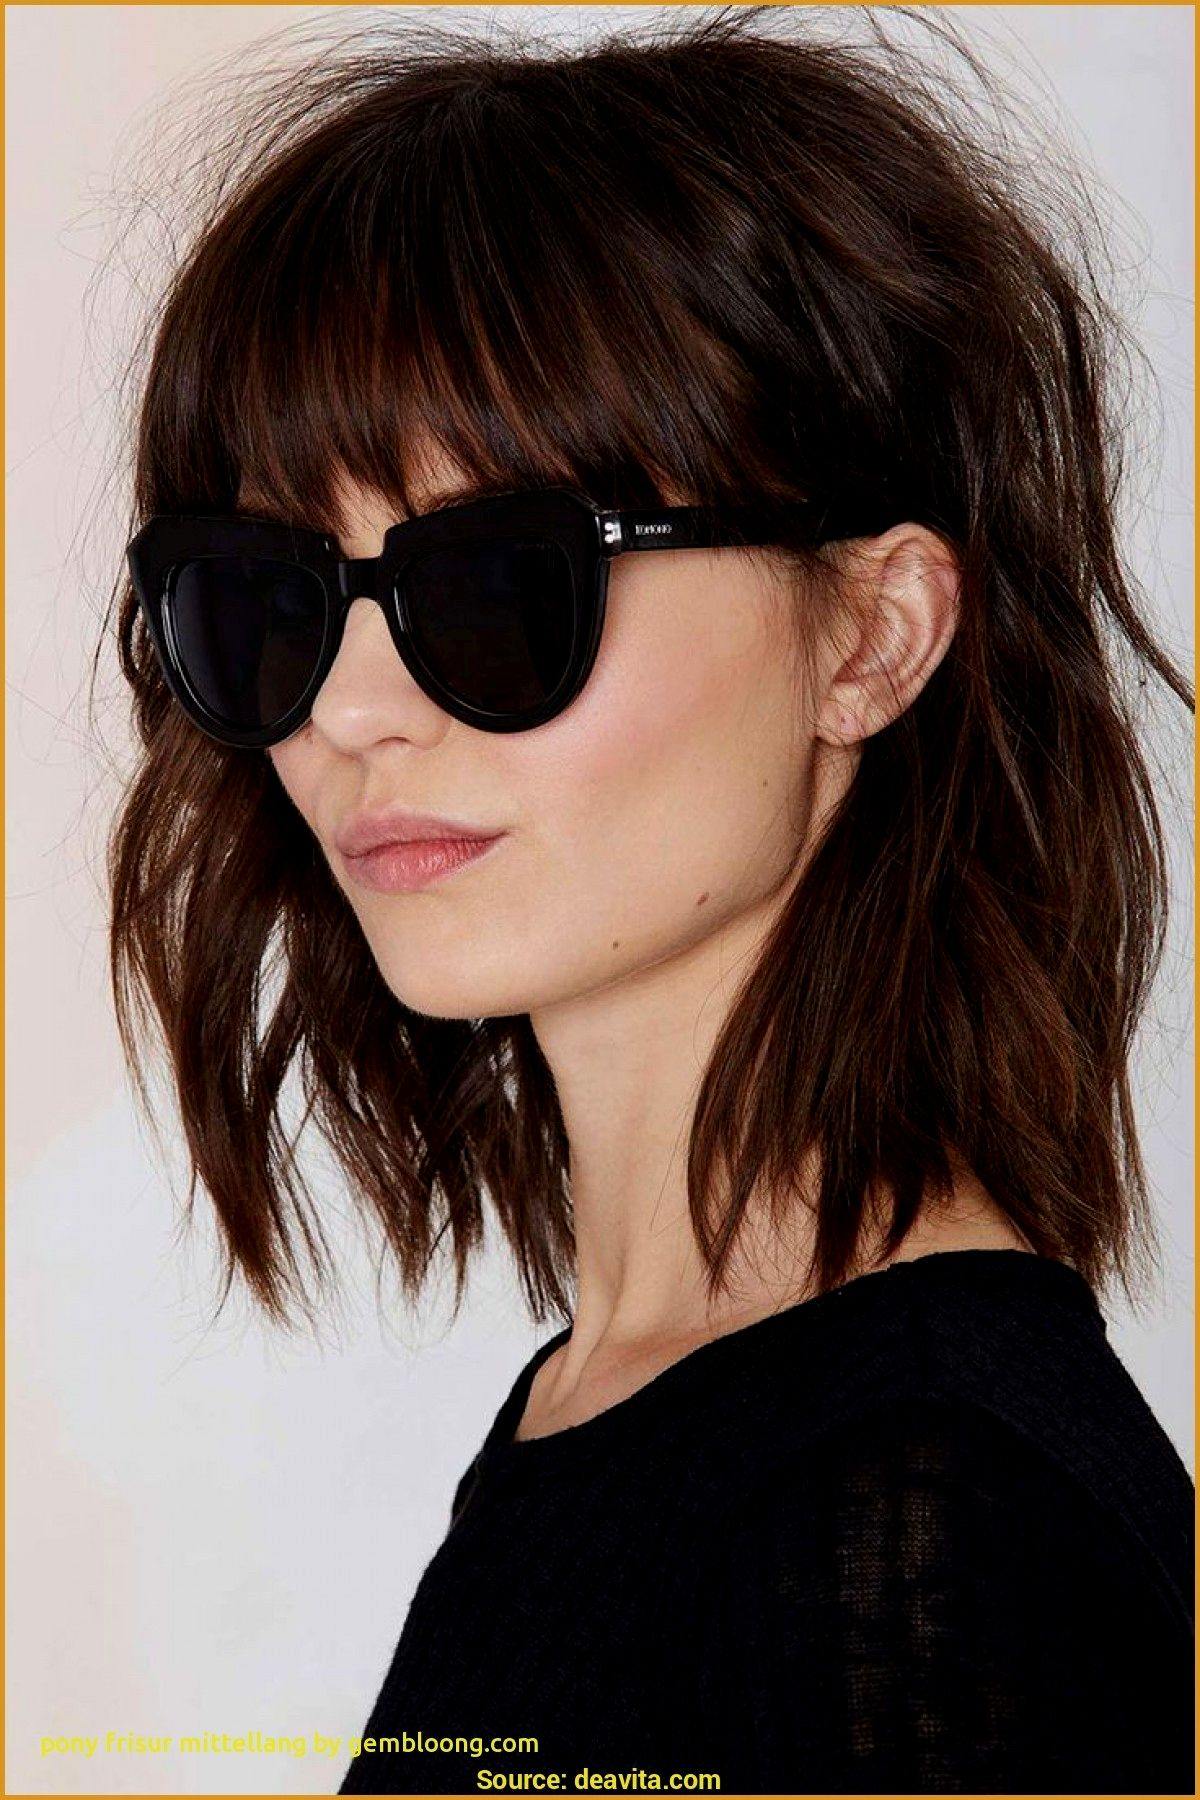 unique current hairstyles foto-Cool Current Hairstyles Image